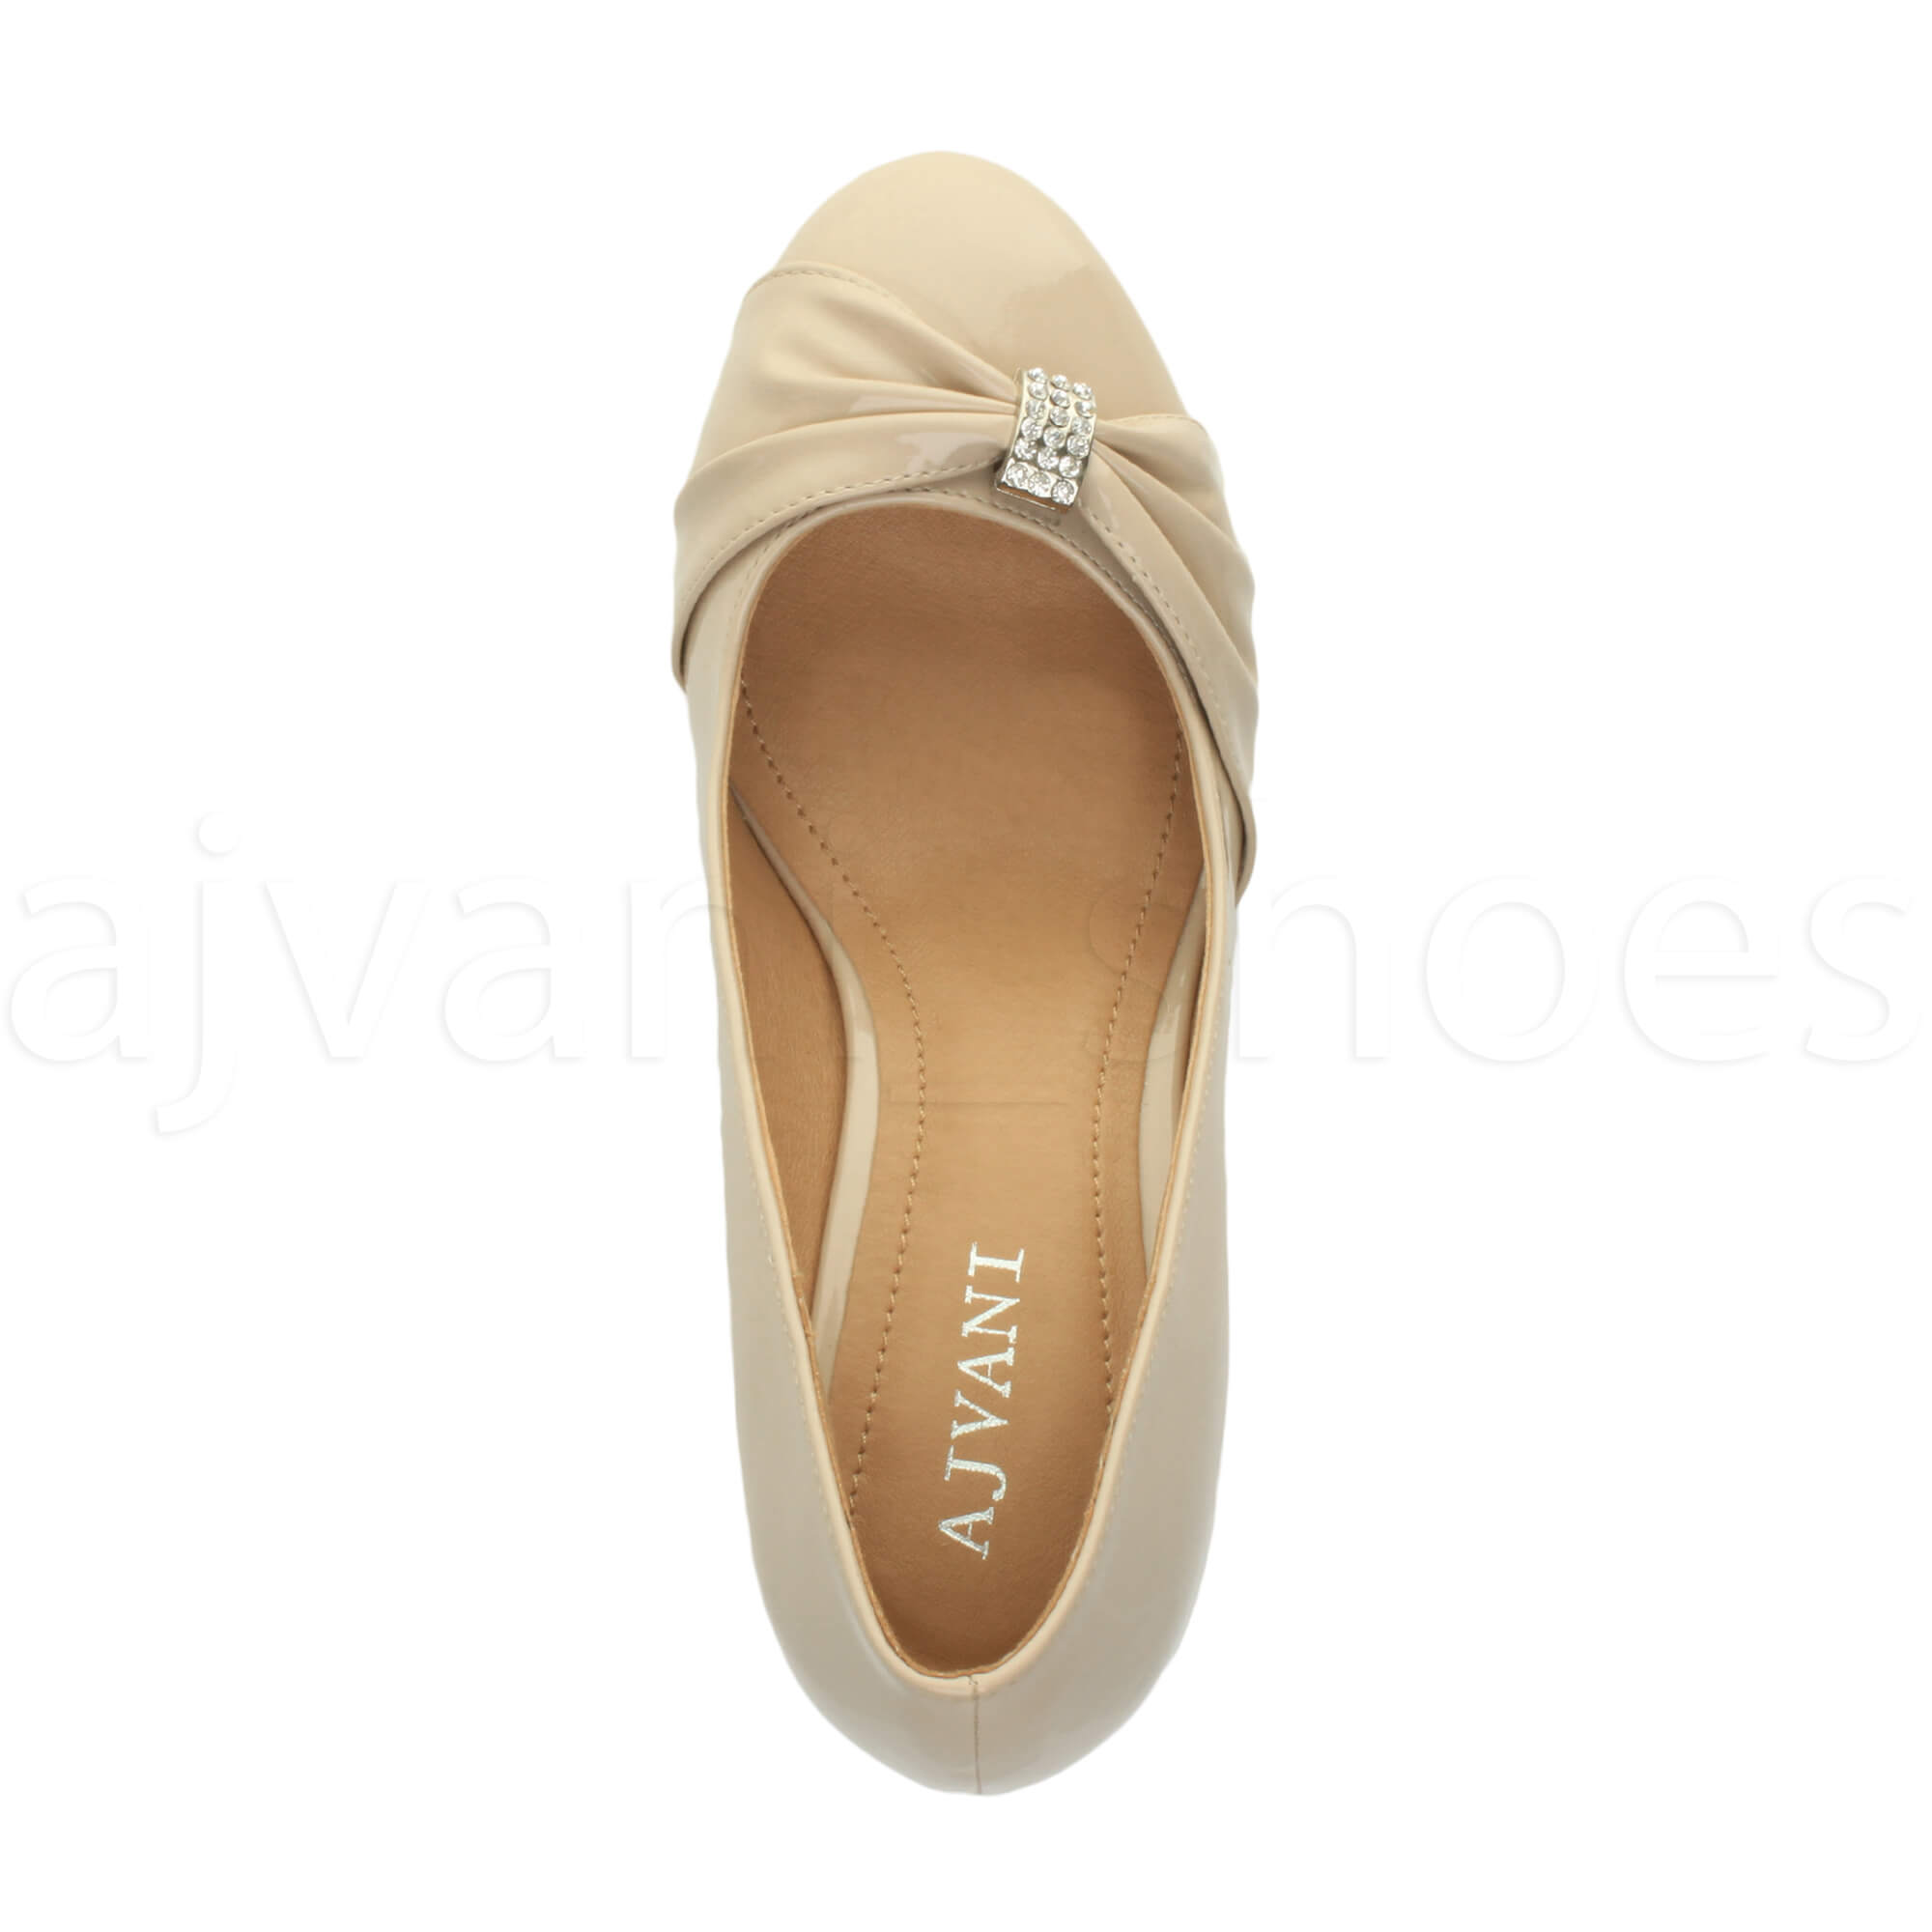 WOMENS-LADIES-MID-HEEL-RUCHED-DIAMANTE-WEDDING-PROM-EVENING-COURT-SHOES-SIZE thumbnail 72